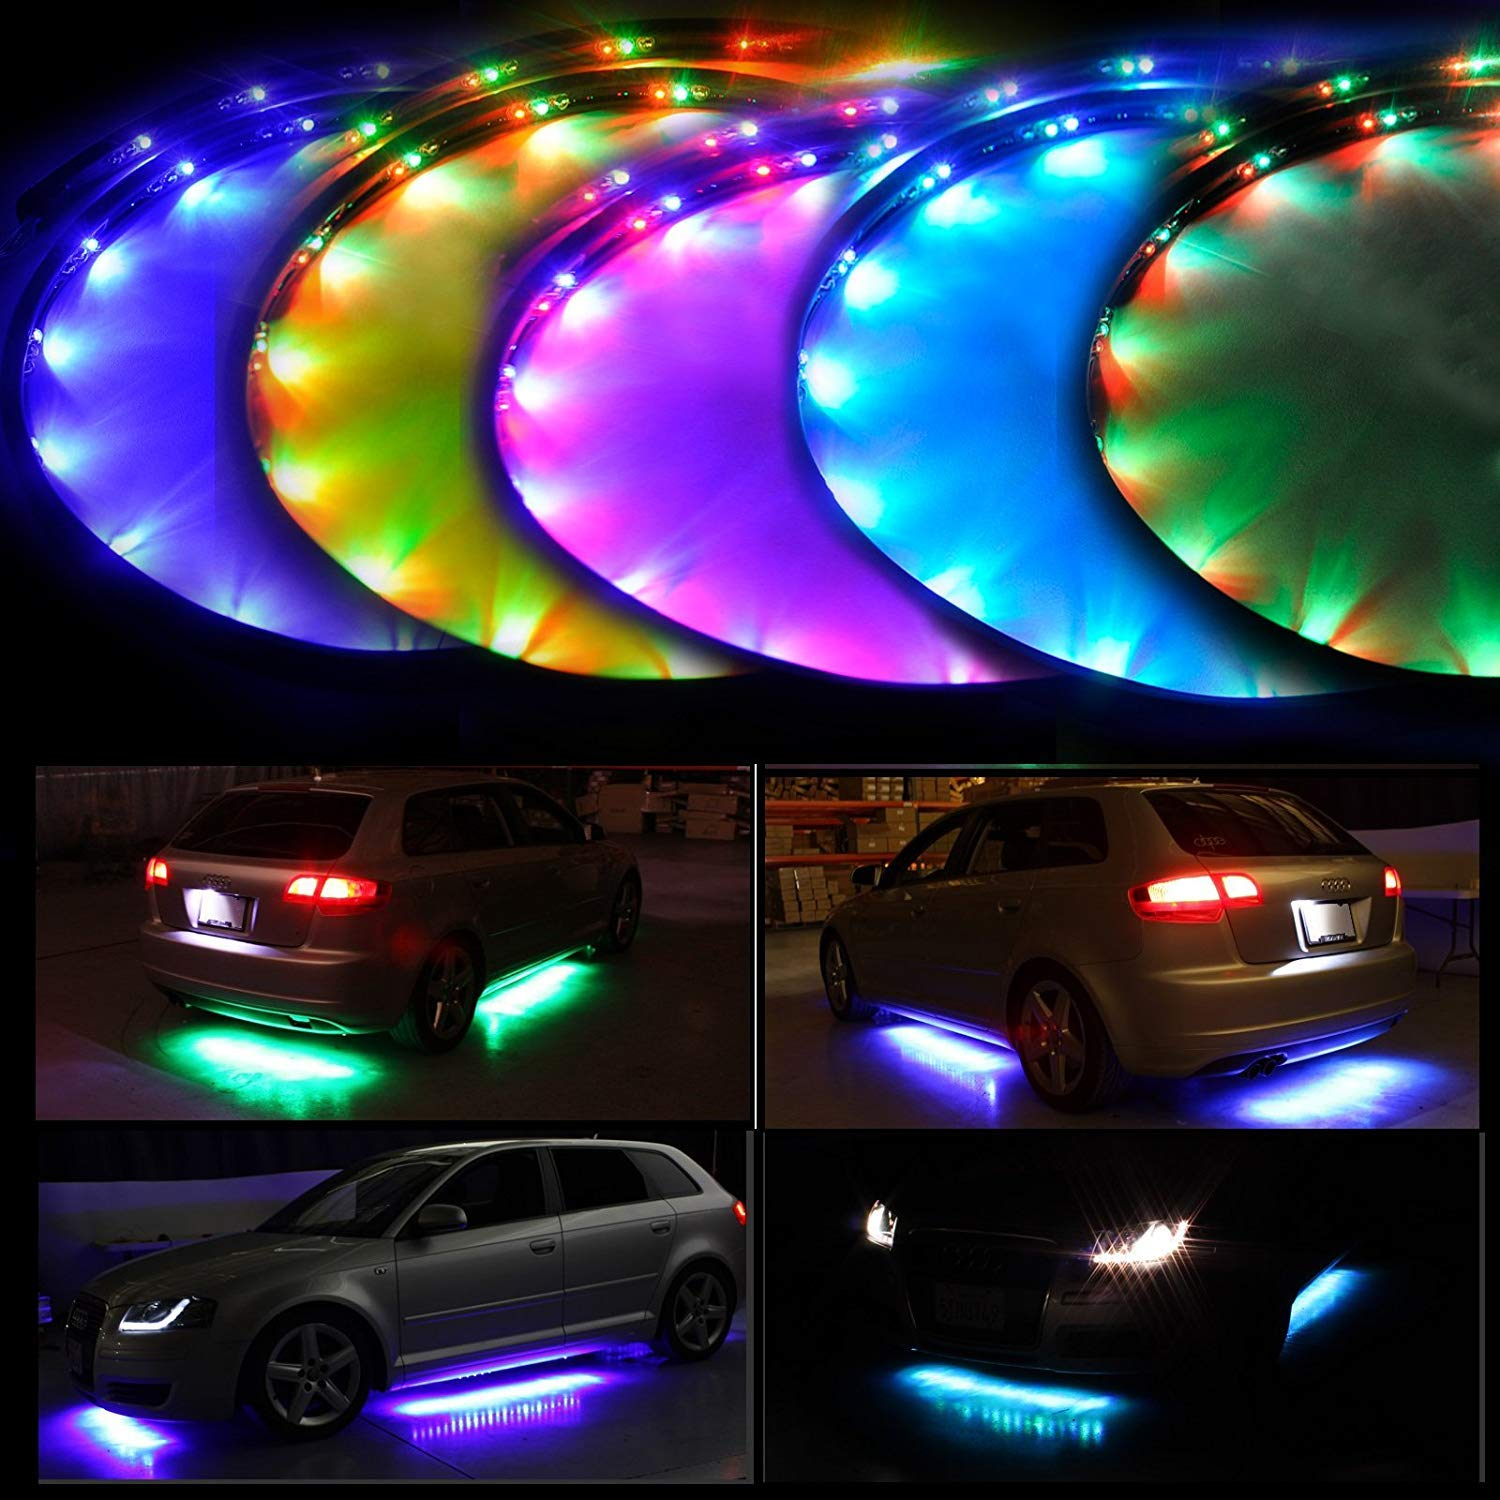 4PCs Car Neon Underglow Underbody LED Light Kit Atmosphere Decorative Lights Strip Undercar Strip Lighting High Intensity LED Rock Lights 8 color w//Sound Active Function and Wireless Remote Control TOYHUYI